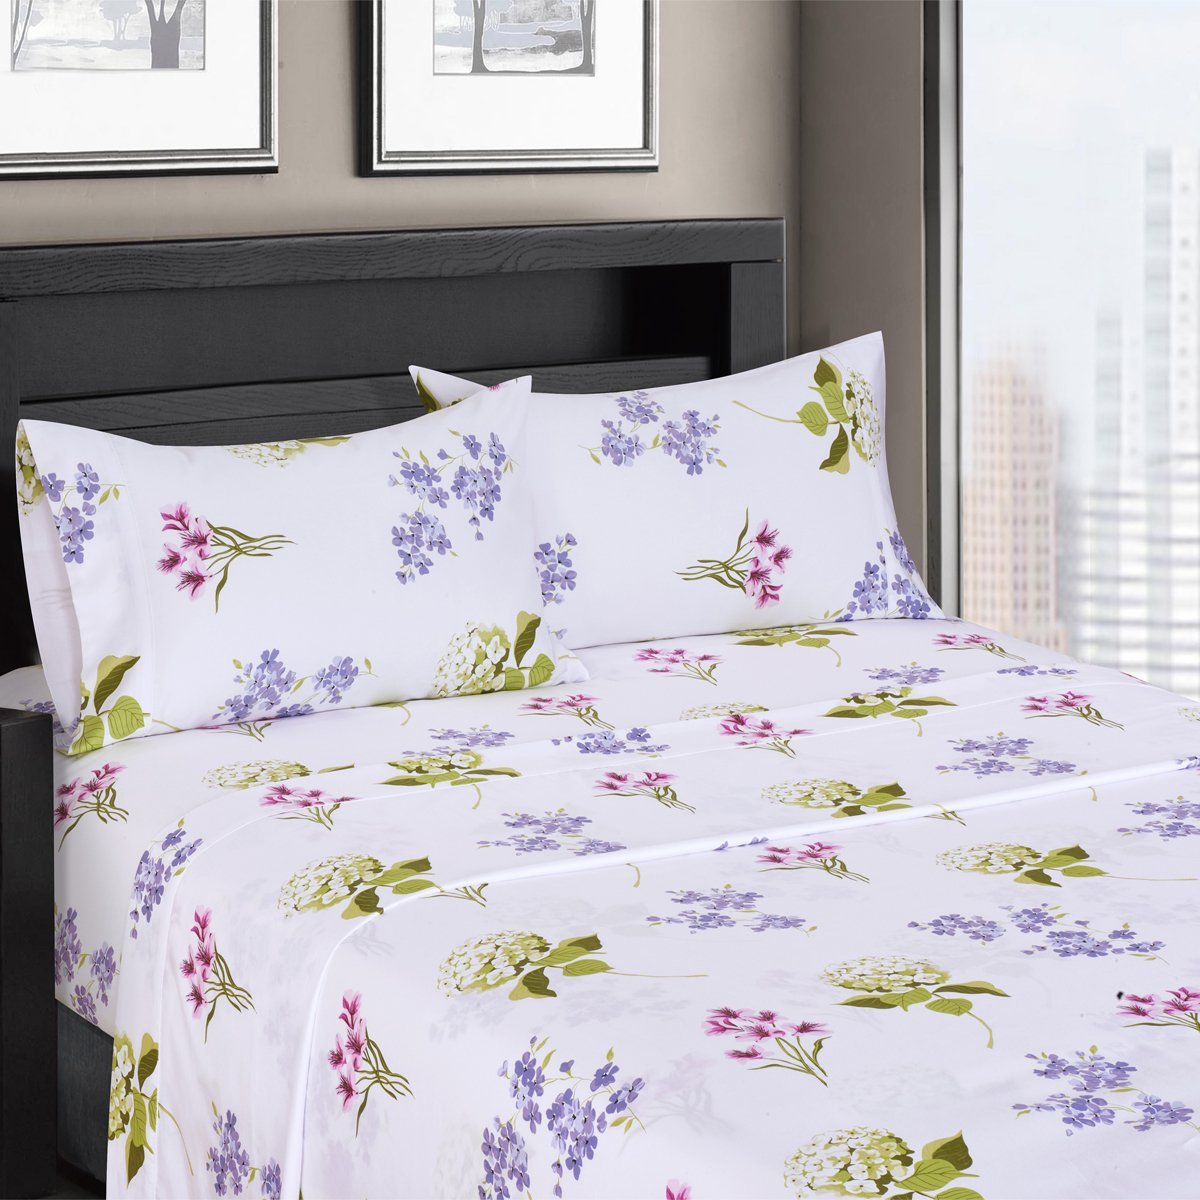 Blossom Floral Sateen Cotton Sheets, 4pc Queen Bed Sheet Set 100% Cotton, Superior Sateen Weave, Silky Soft, Deep Pocket, Modern Reactive Print, 300 Thread Count